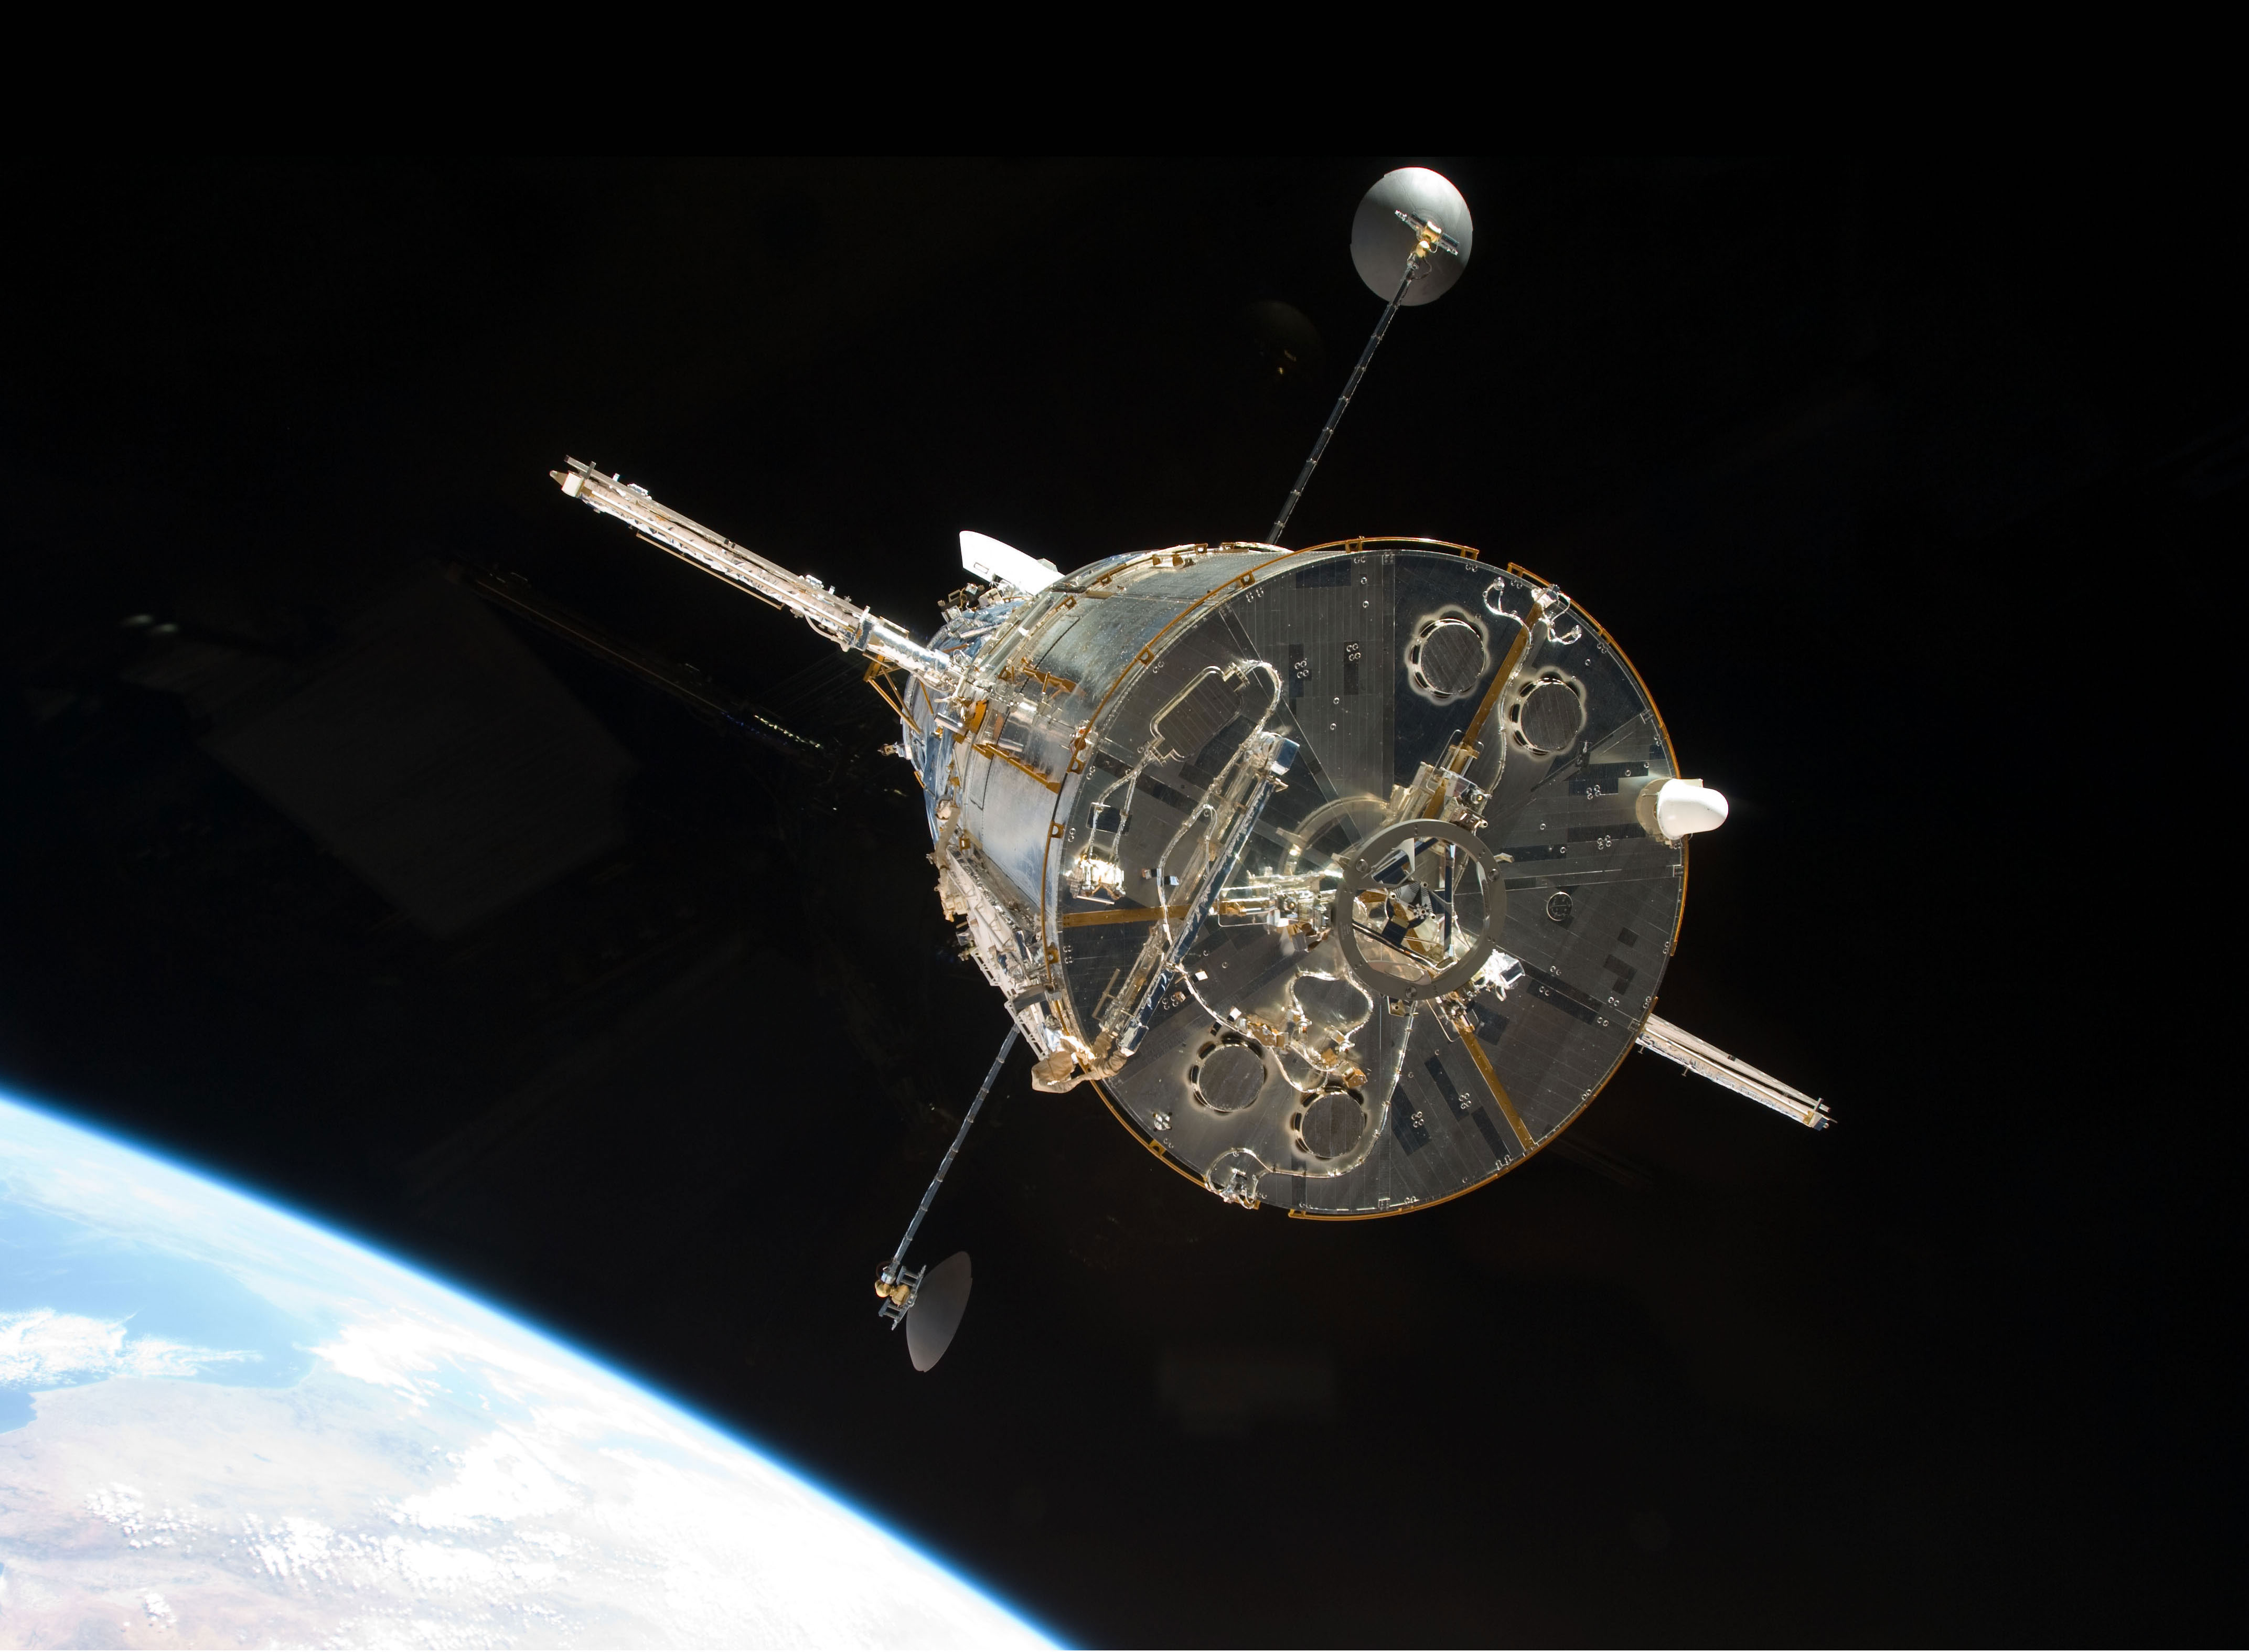 The Space Shuttle Atlantis moves away from Hubble after the telescope's release on May 19, 2009 concluded Servicing Mission 4. The Soft Capture Mechanism, a ring that a future robotic mission can grapple in order to de-orbit the telescope, is visible in the center. Credit: NASA